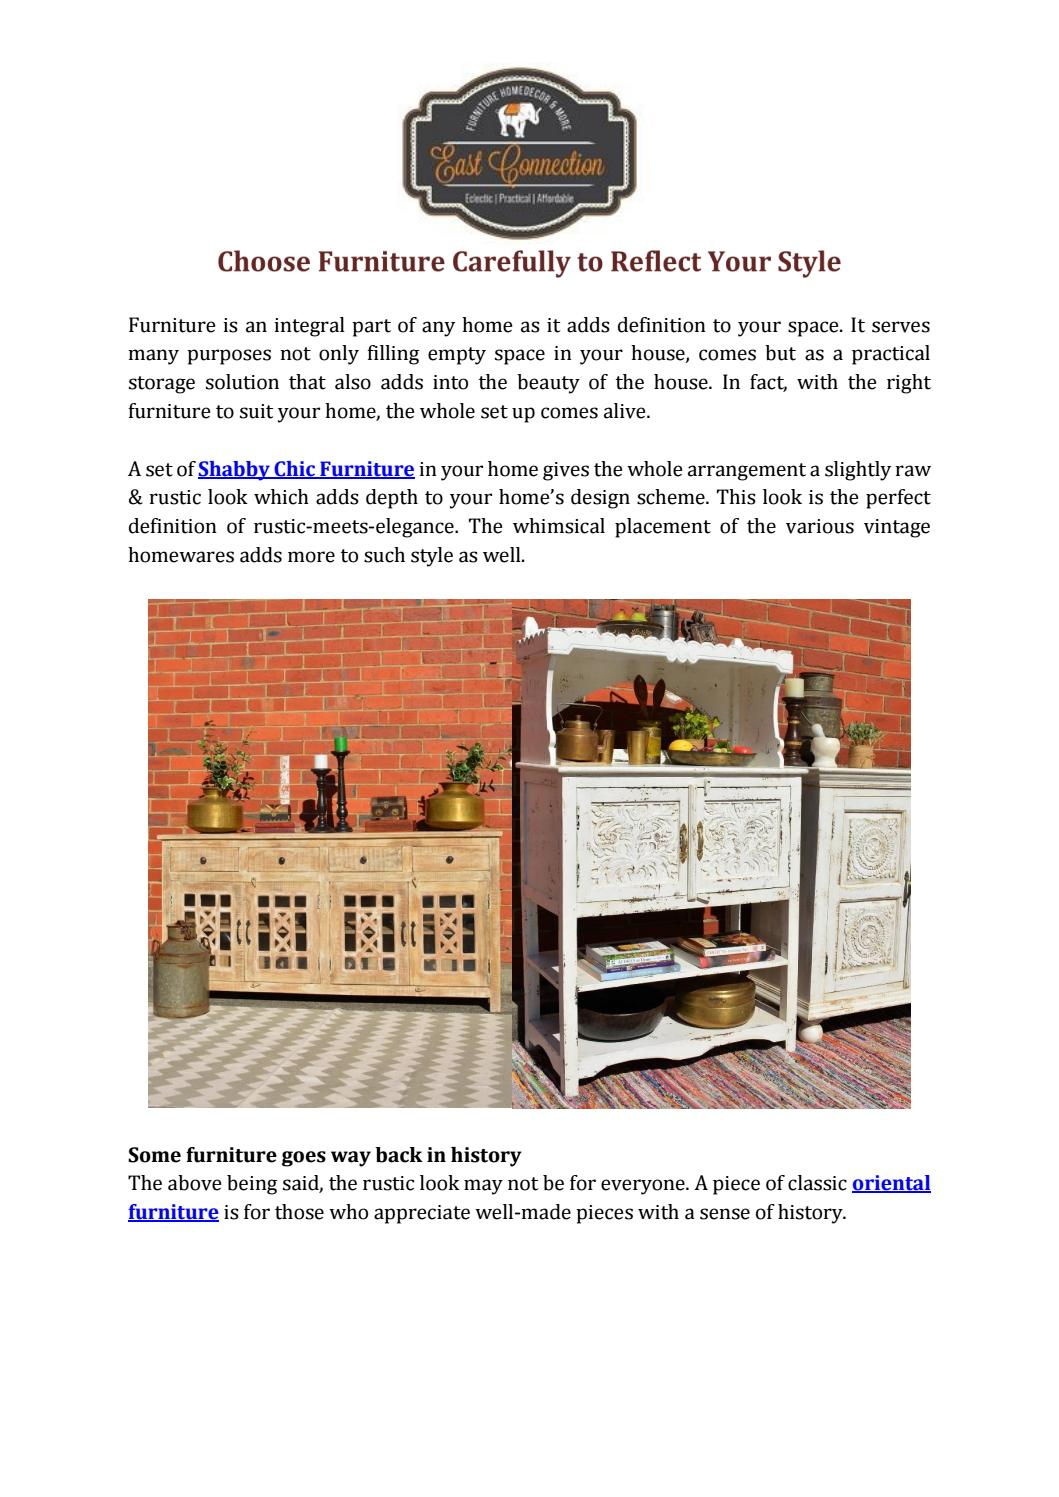 Choose Furniture Carefully to Reflect Your Style by East